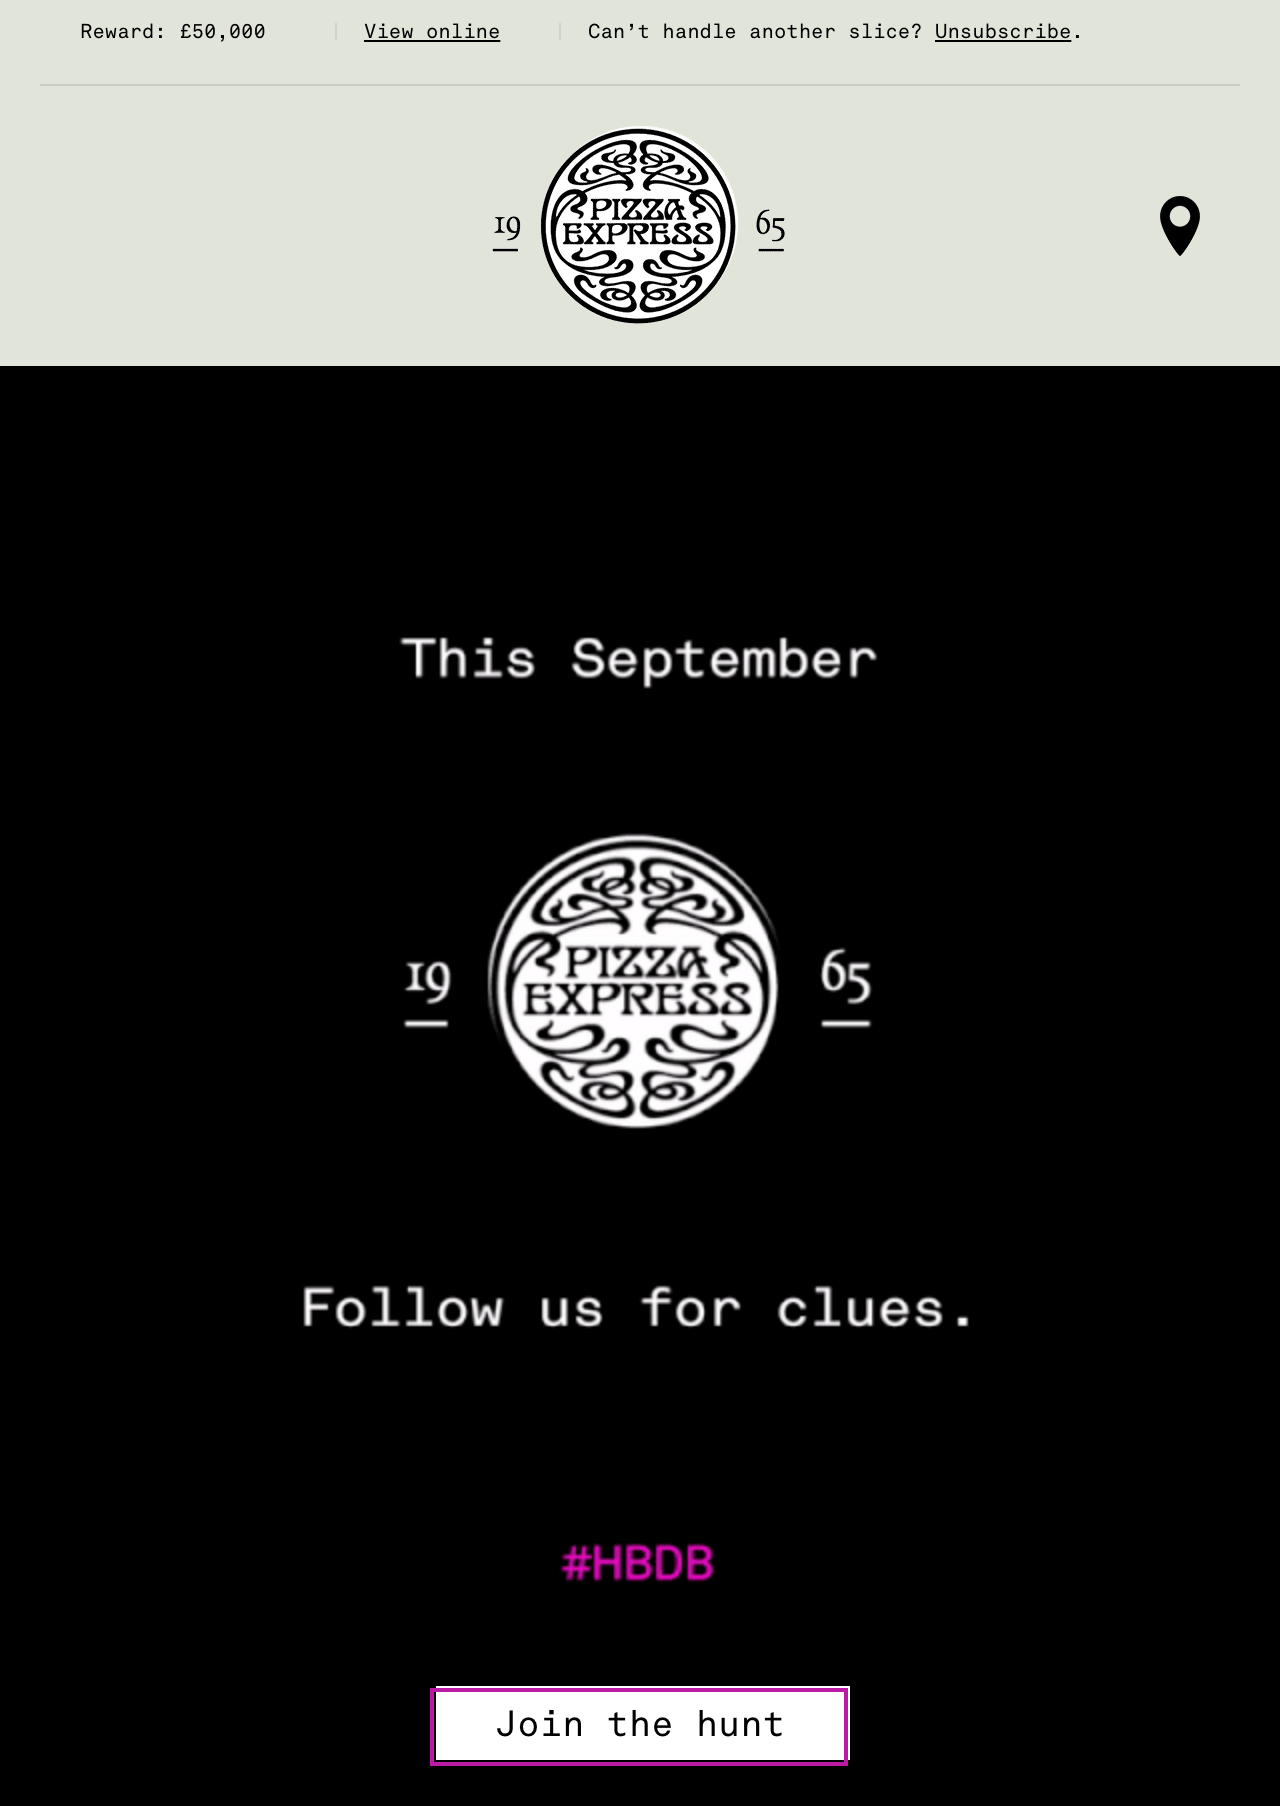 Promotional email from Pizza Express hinting users at a mysterious event